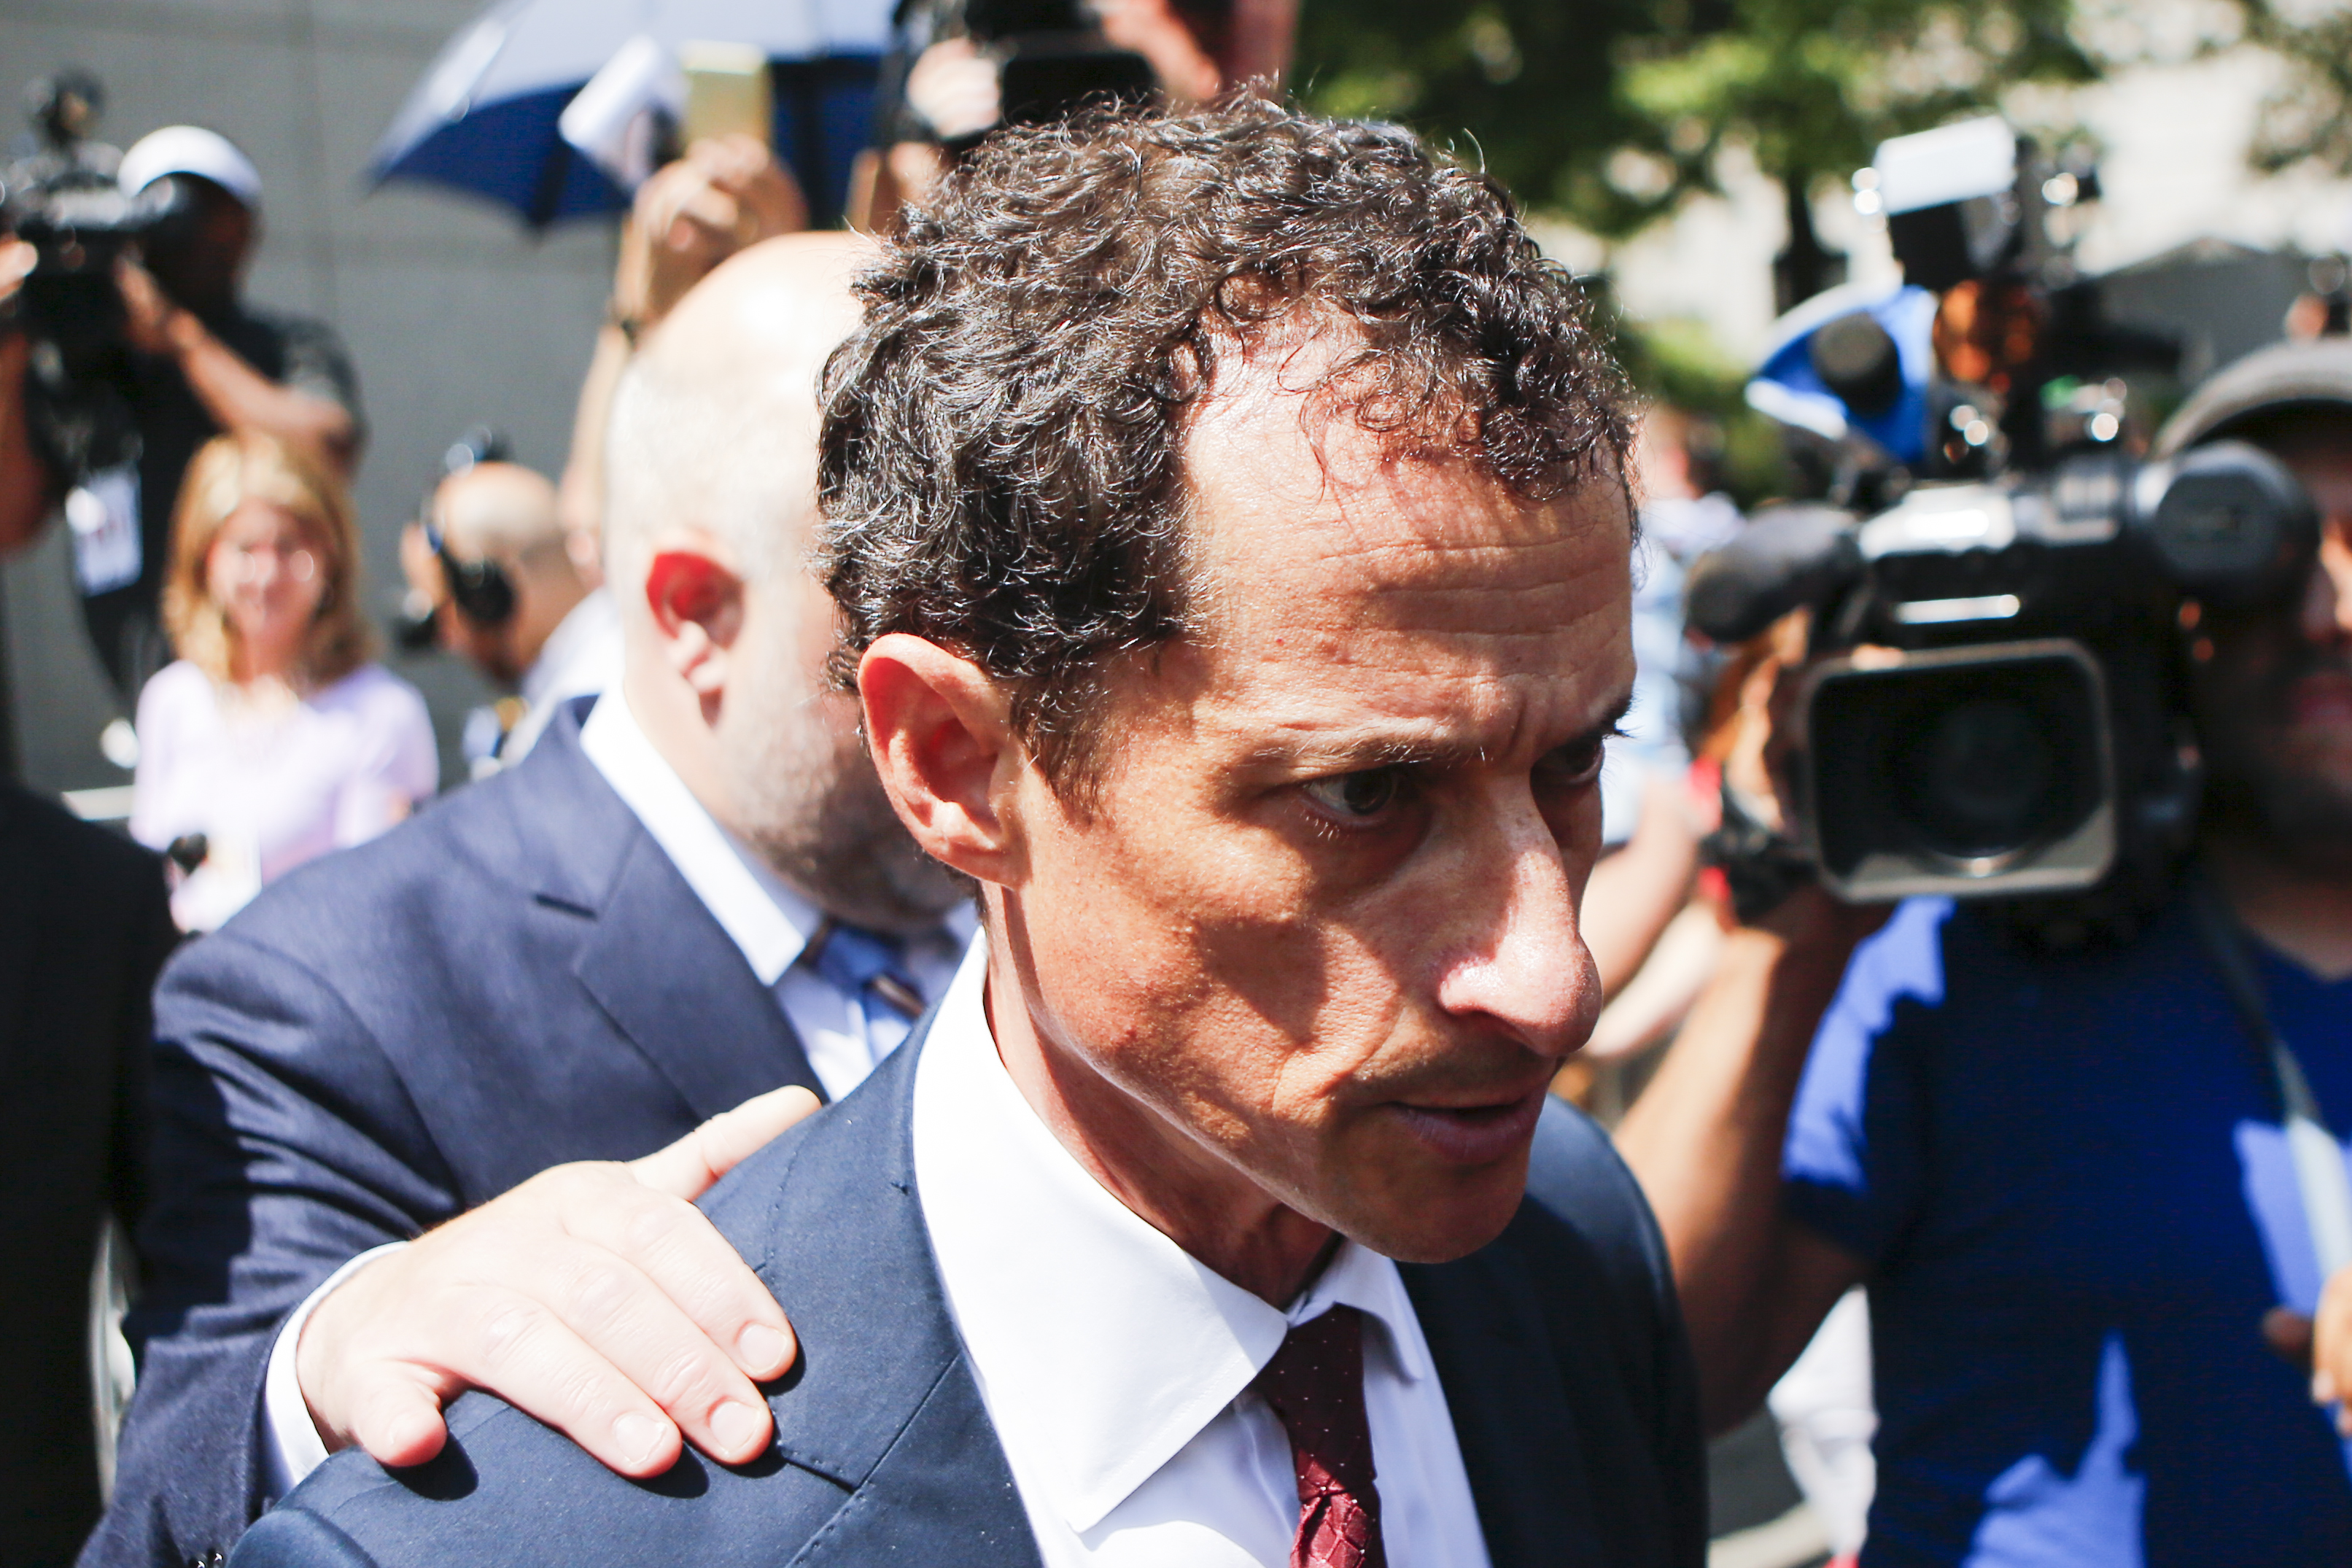 Former Democratic Congressman Anthony Weiner Pleads Guilty In Sexting Case